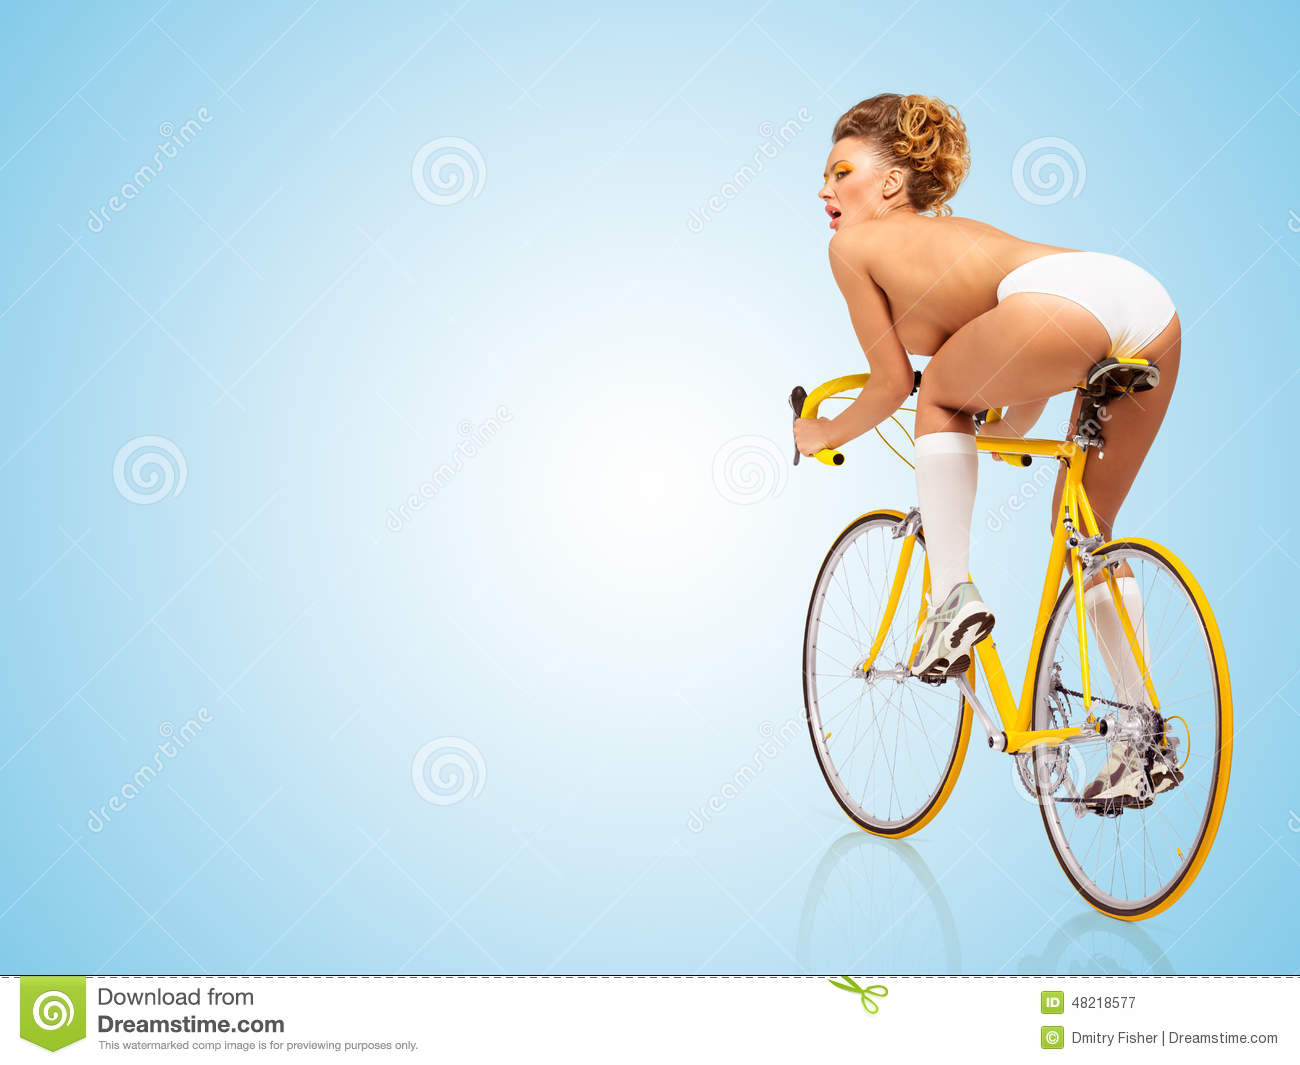 nude-bike-sexy-girl-french-voyeur-site